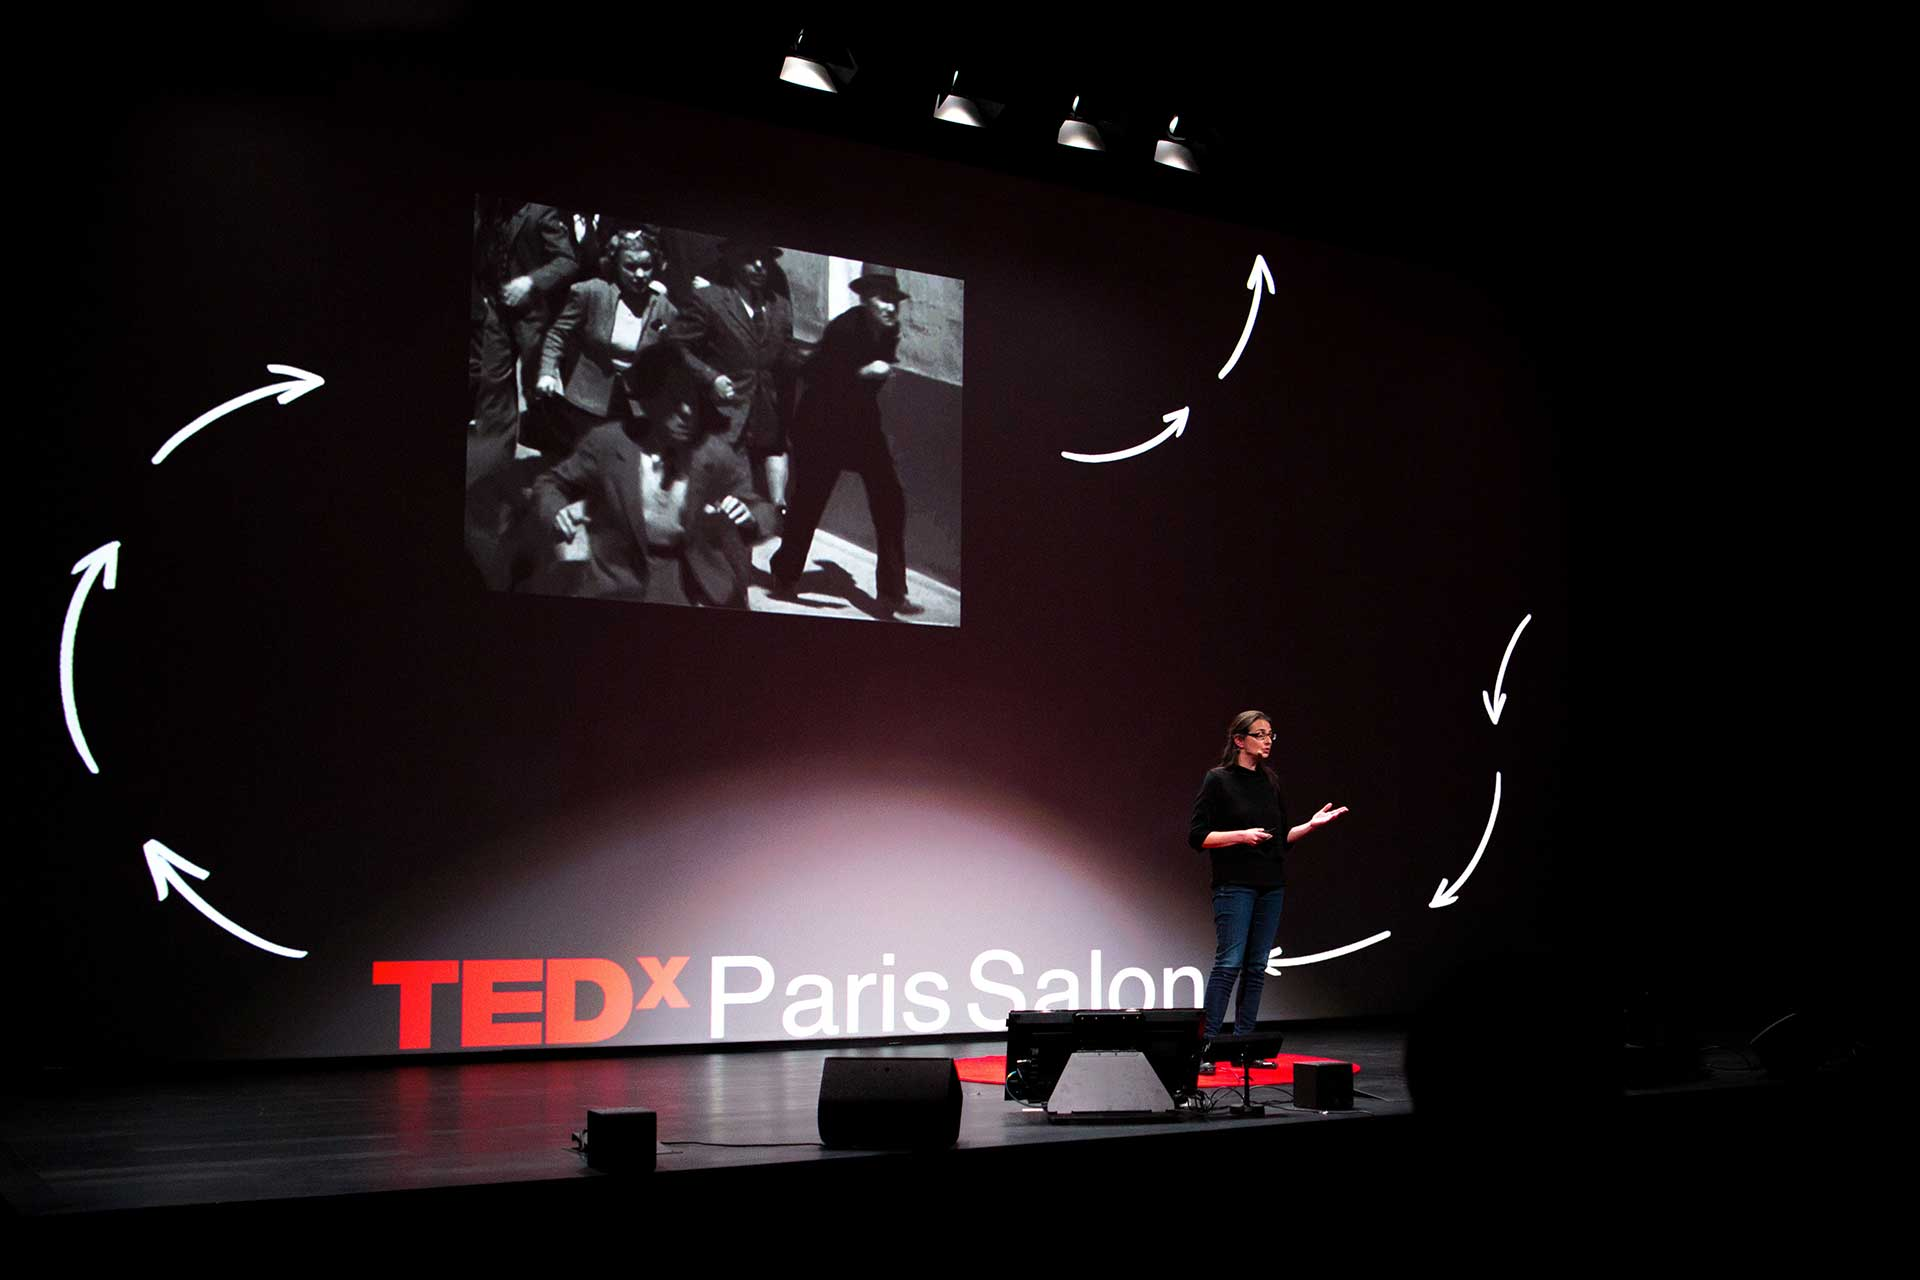 conference-TEDxParisSalon-2019-11.jpg